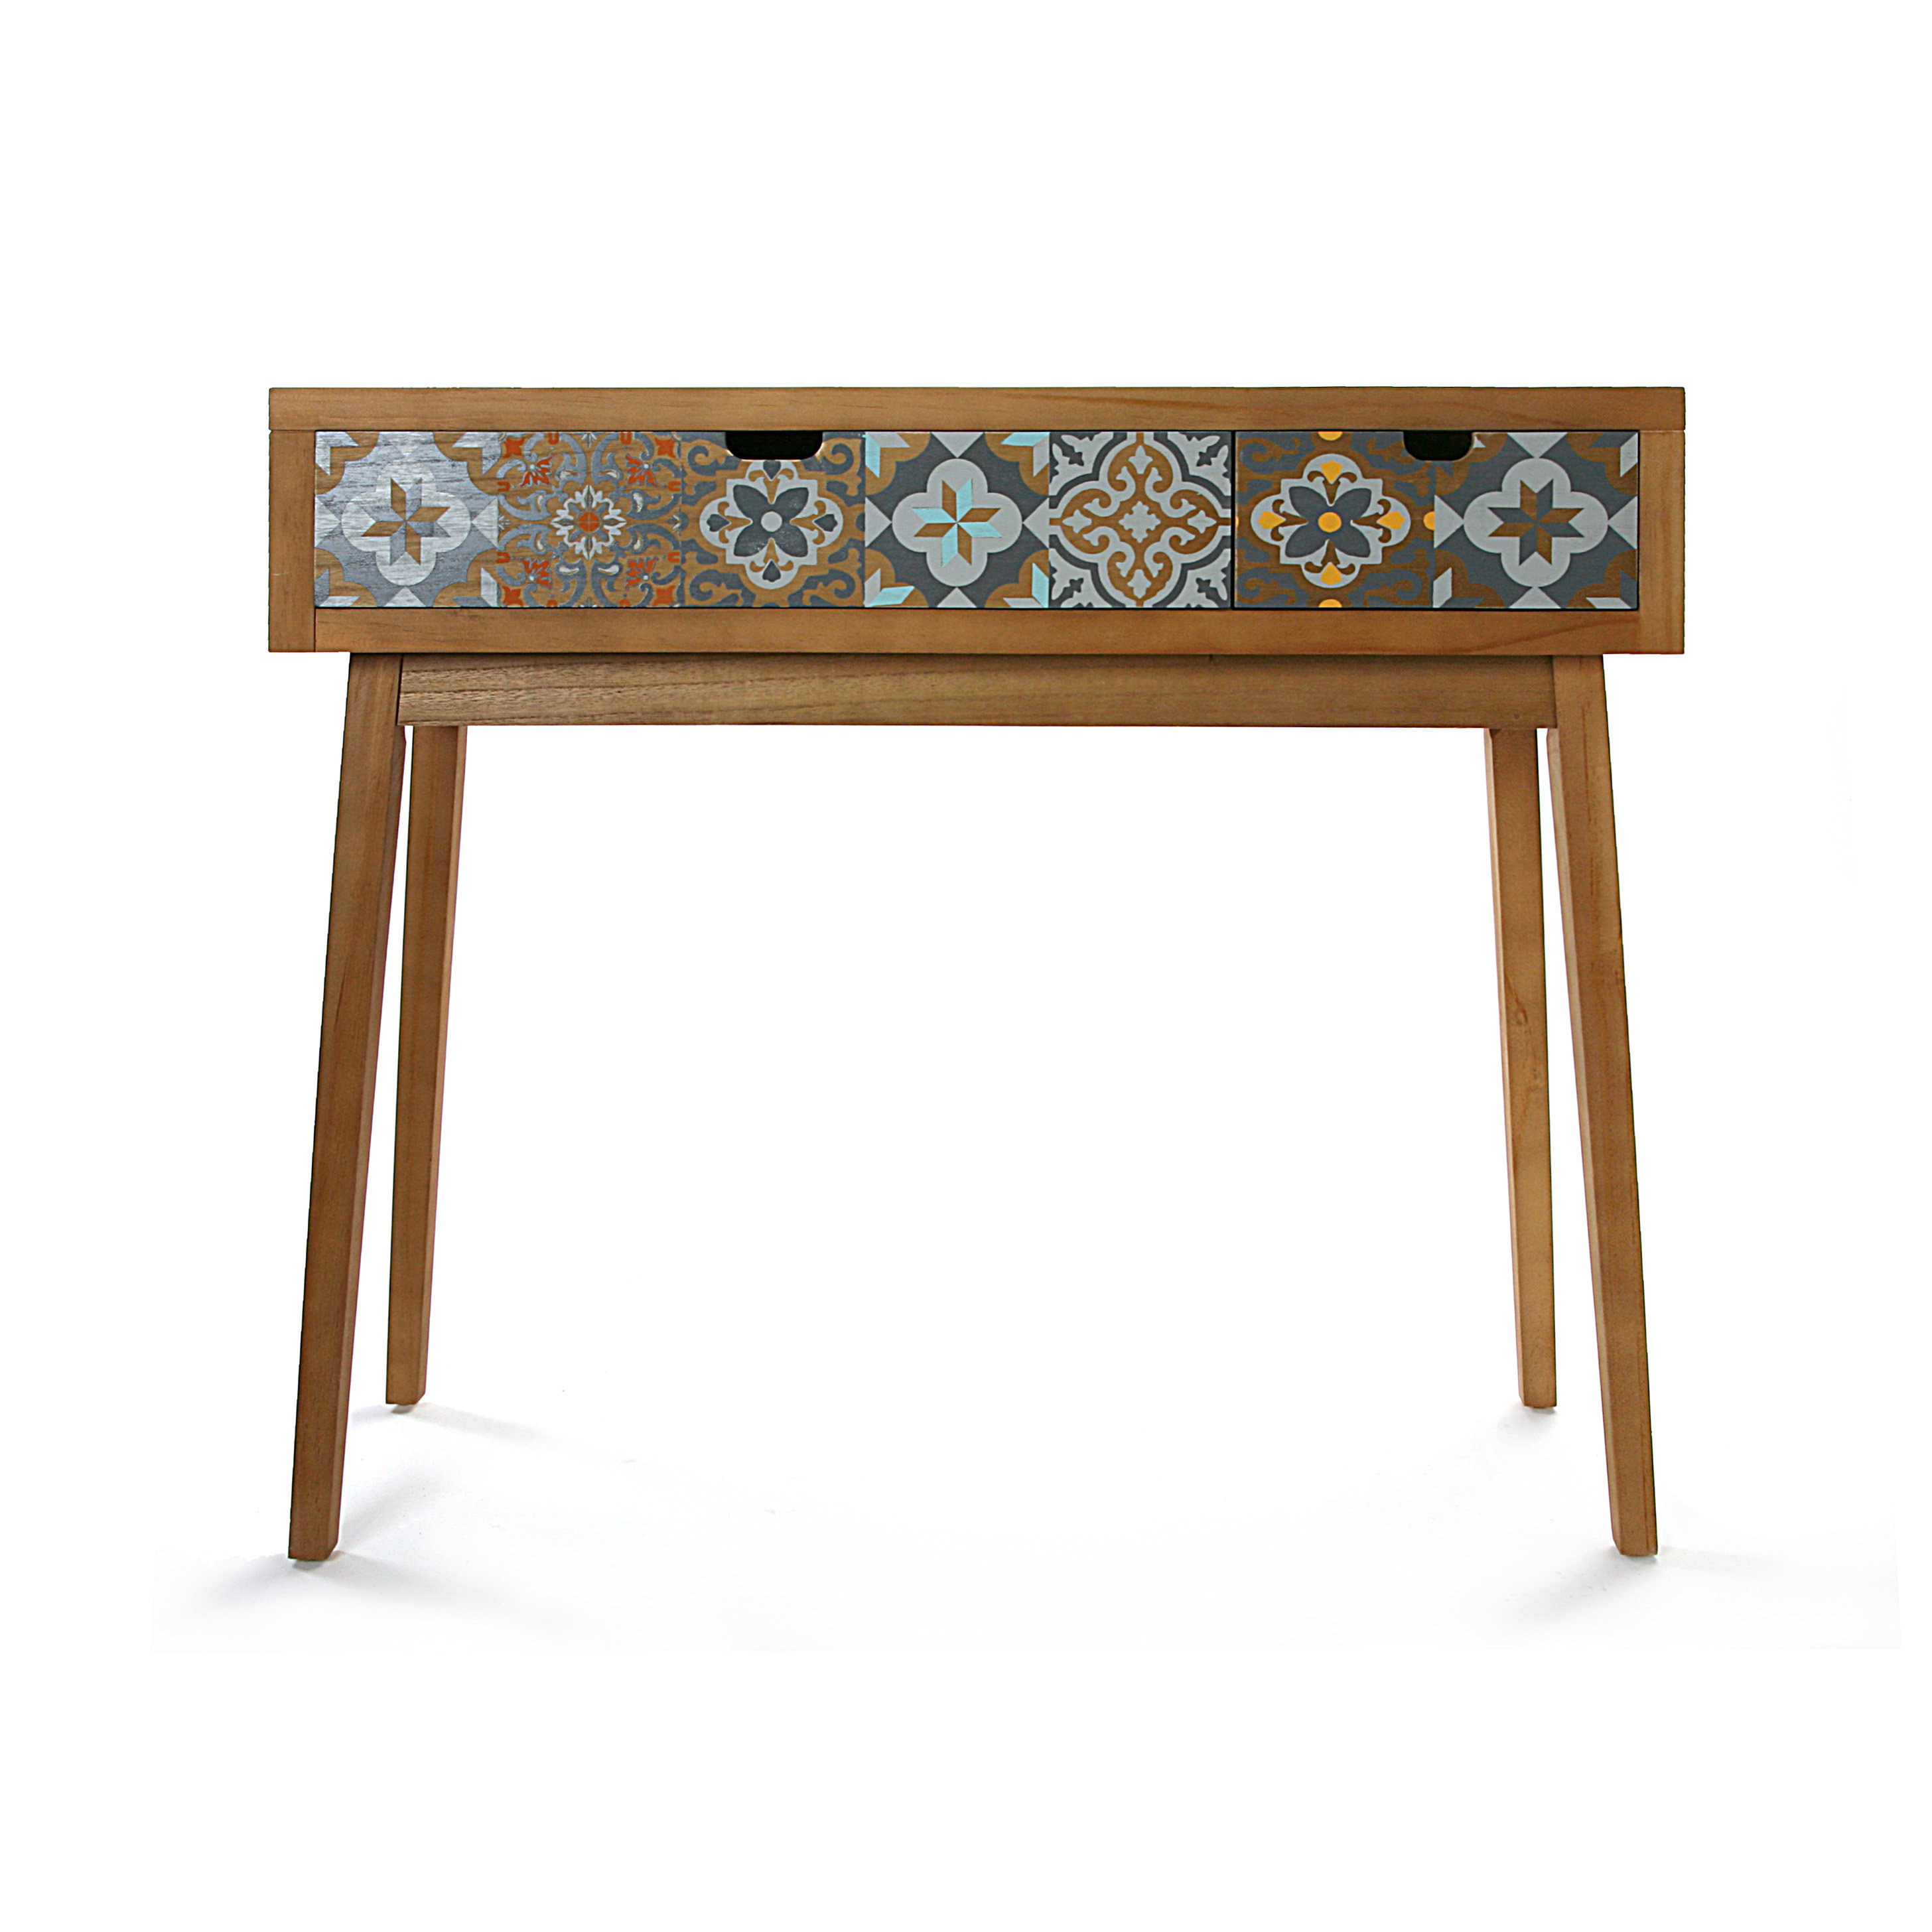 Kitchen Console Tables | Wayfair.co.uk Regarding Mix Agate Metal Frame Console Tables (Gallery 8 of 20)